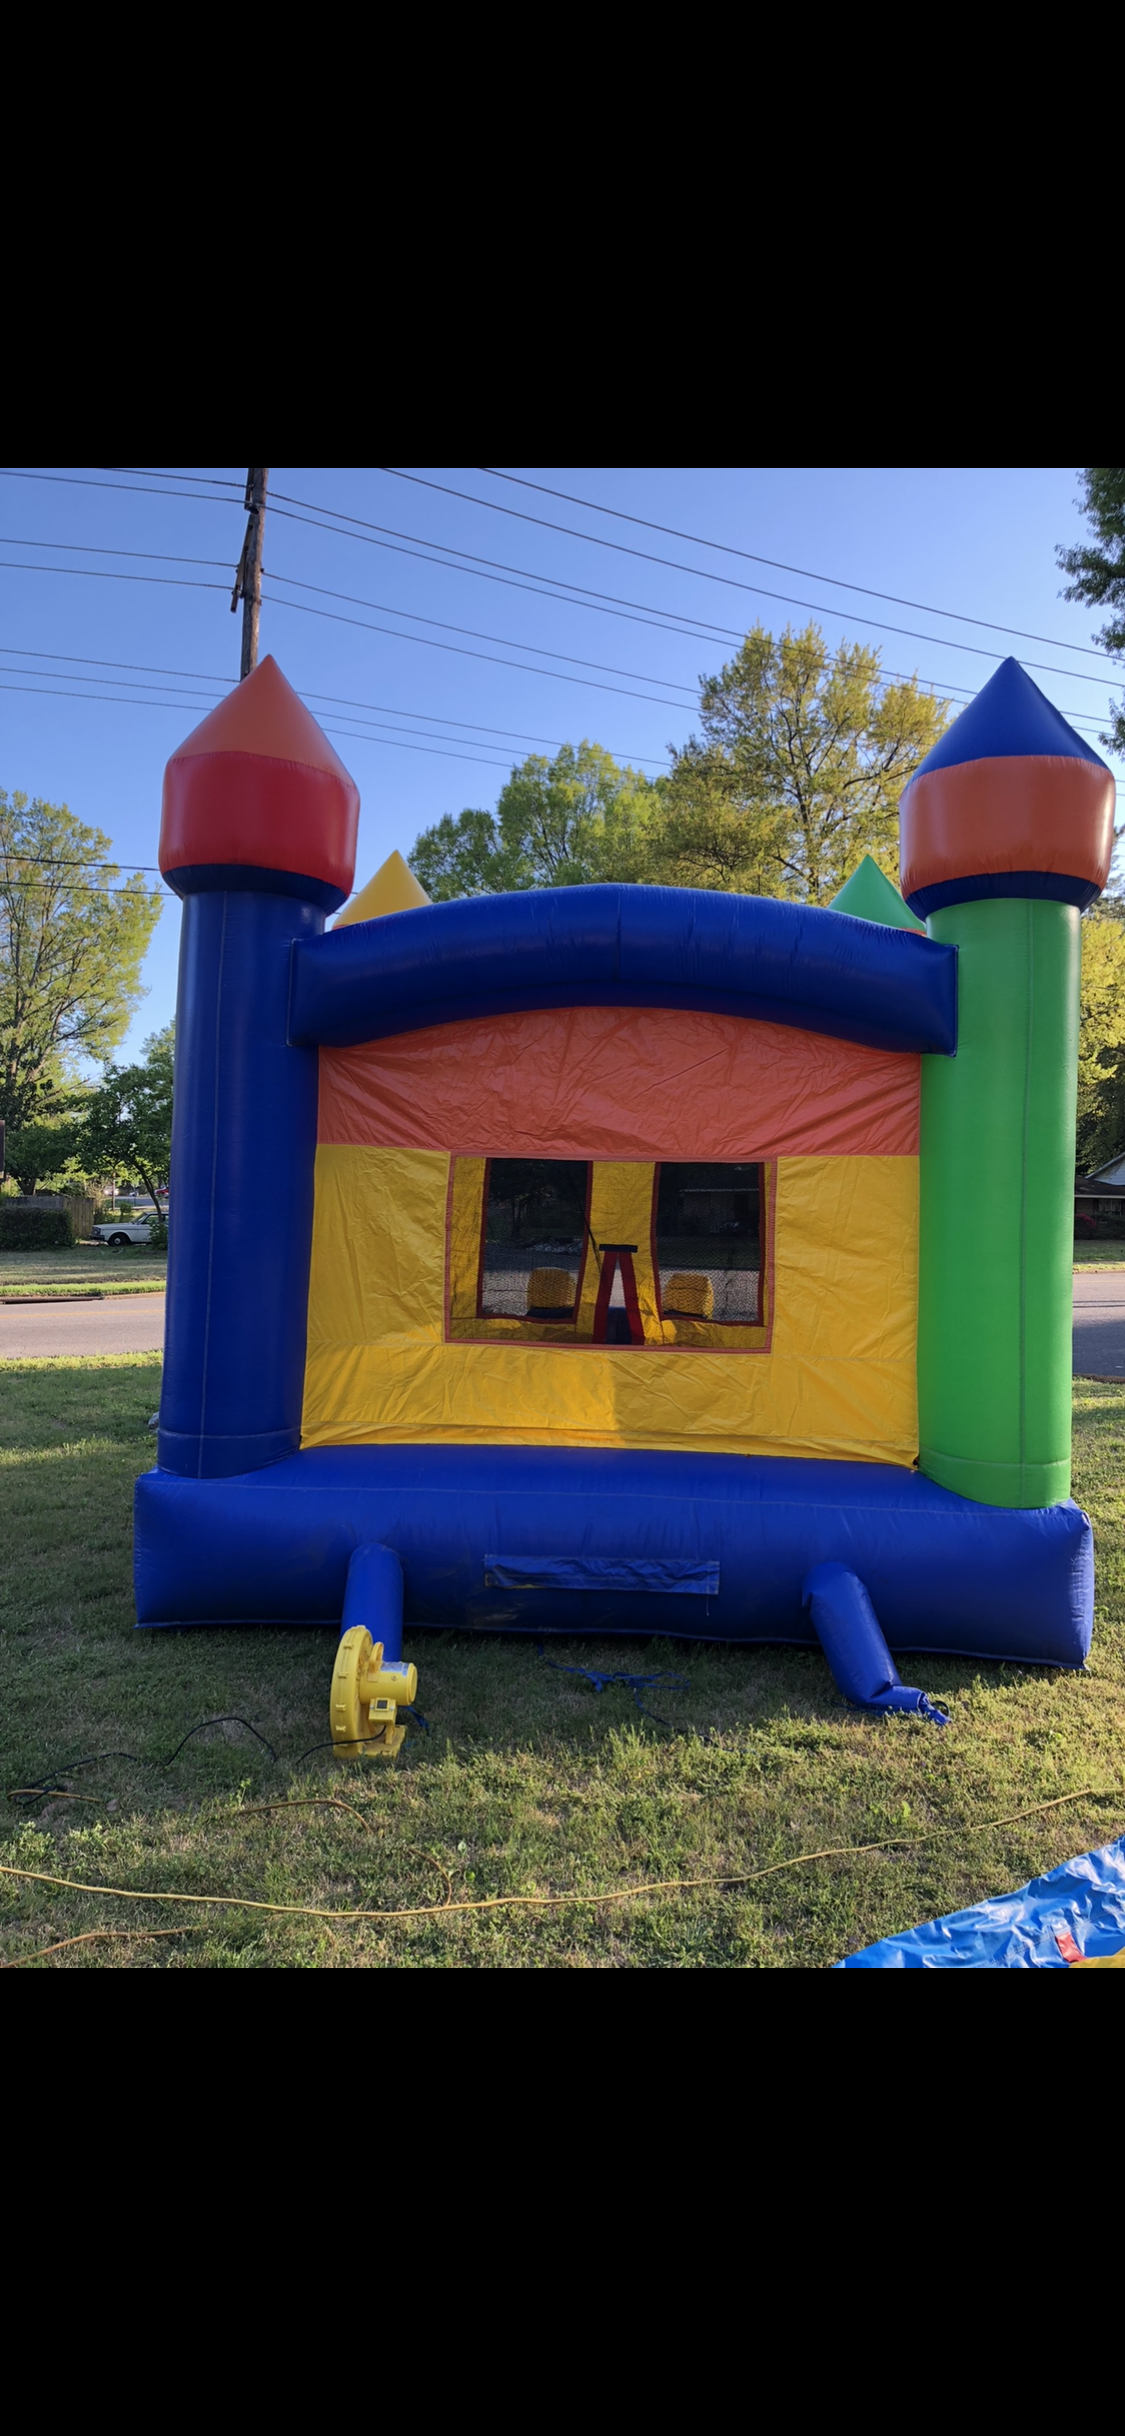 901PARTIES DINING & CATERING $50 MOON BOUNCE RENTAL